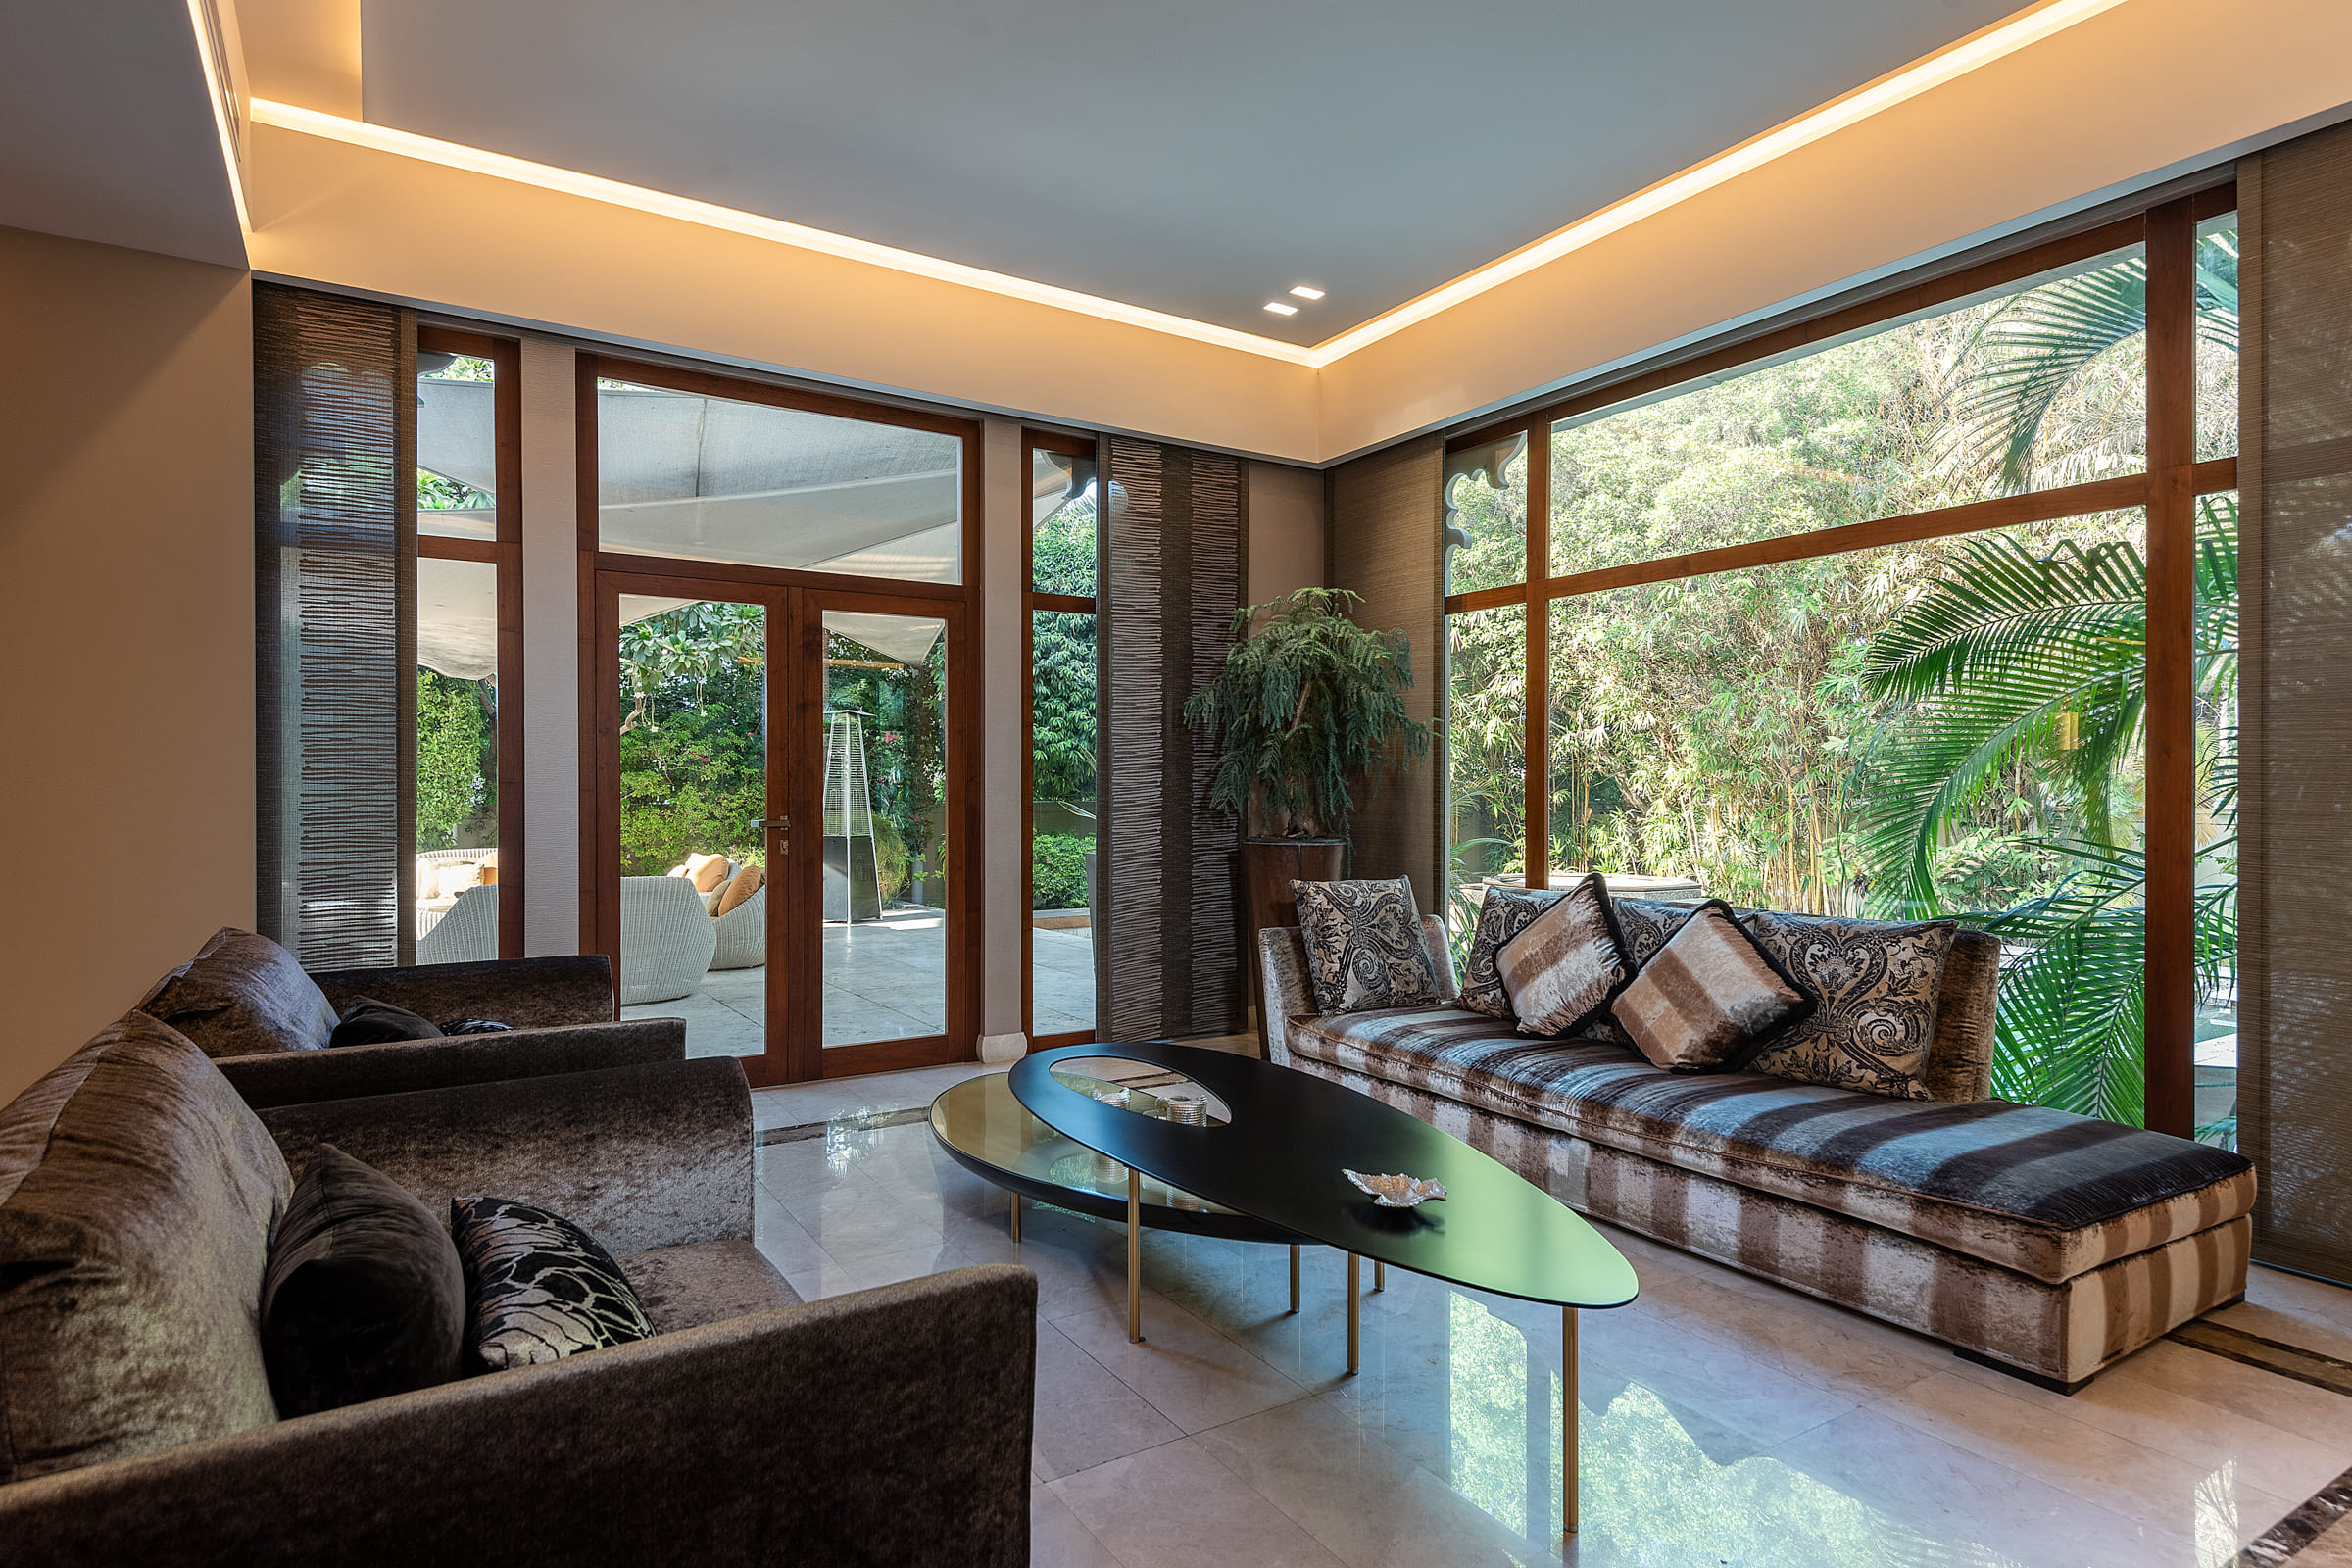 Beautifully| presented| furnished|  home